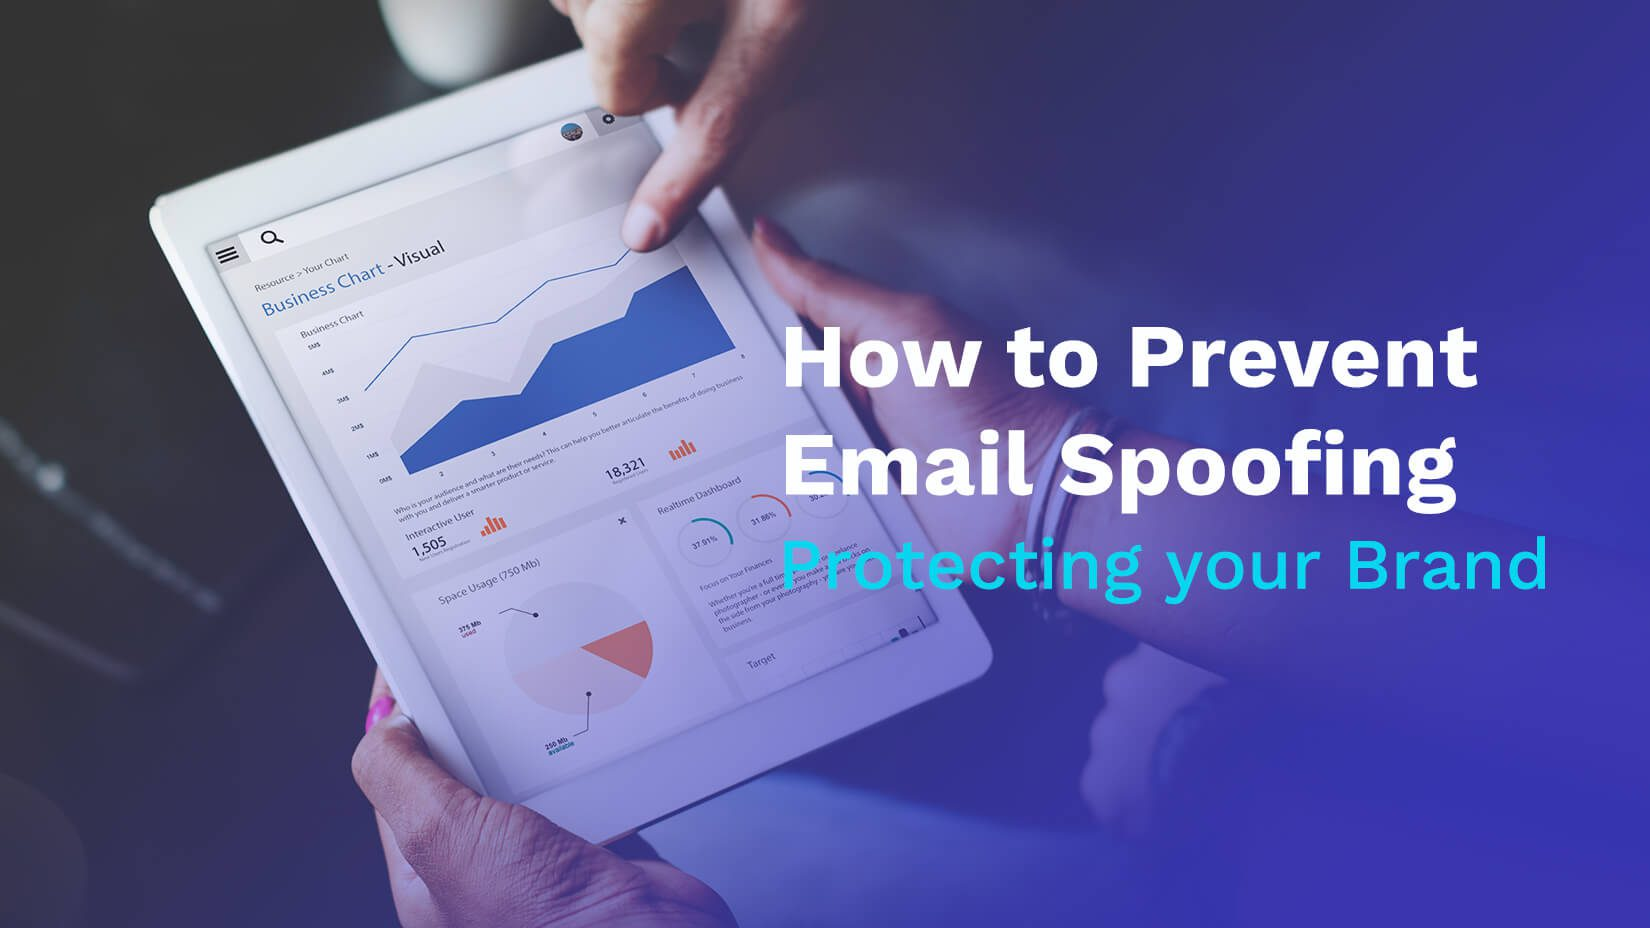 DMARC: How to Prevent Email Spoofing